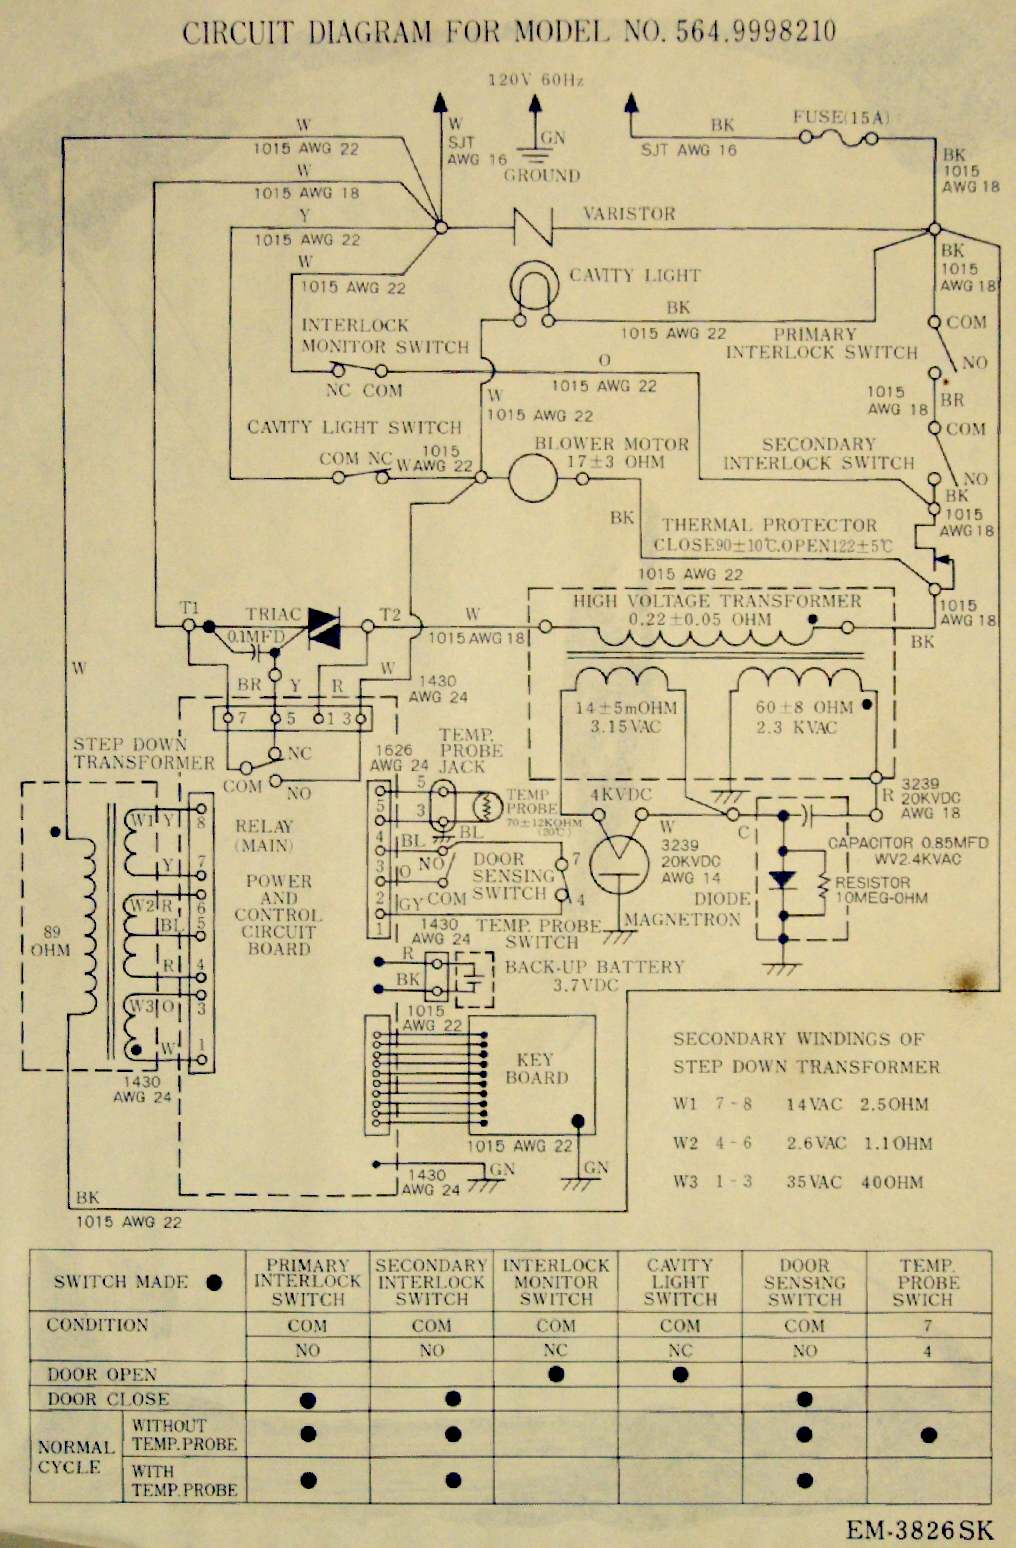 cimg1968 microwave oven schematic?w=315 resistance soldering transformer the smell of molten projects daewoo microwave wiring diagram at bayanpartner.co